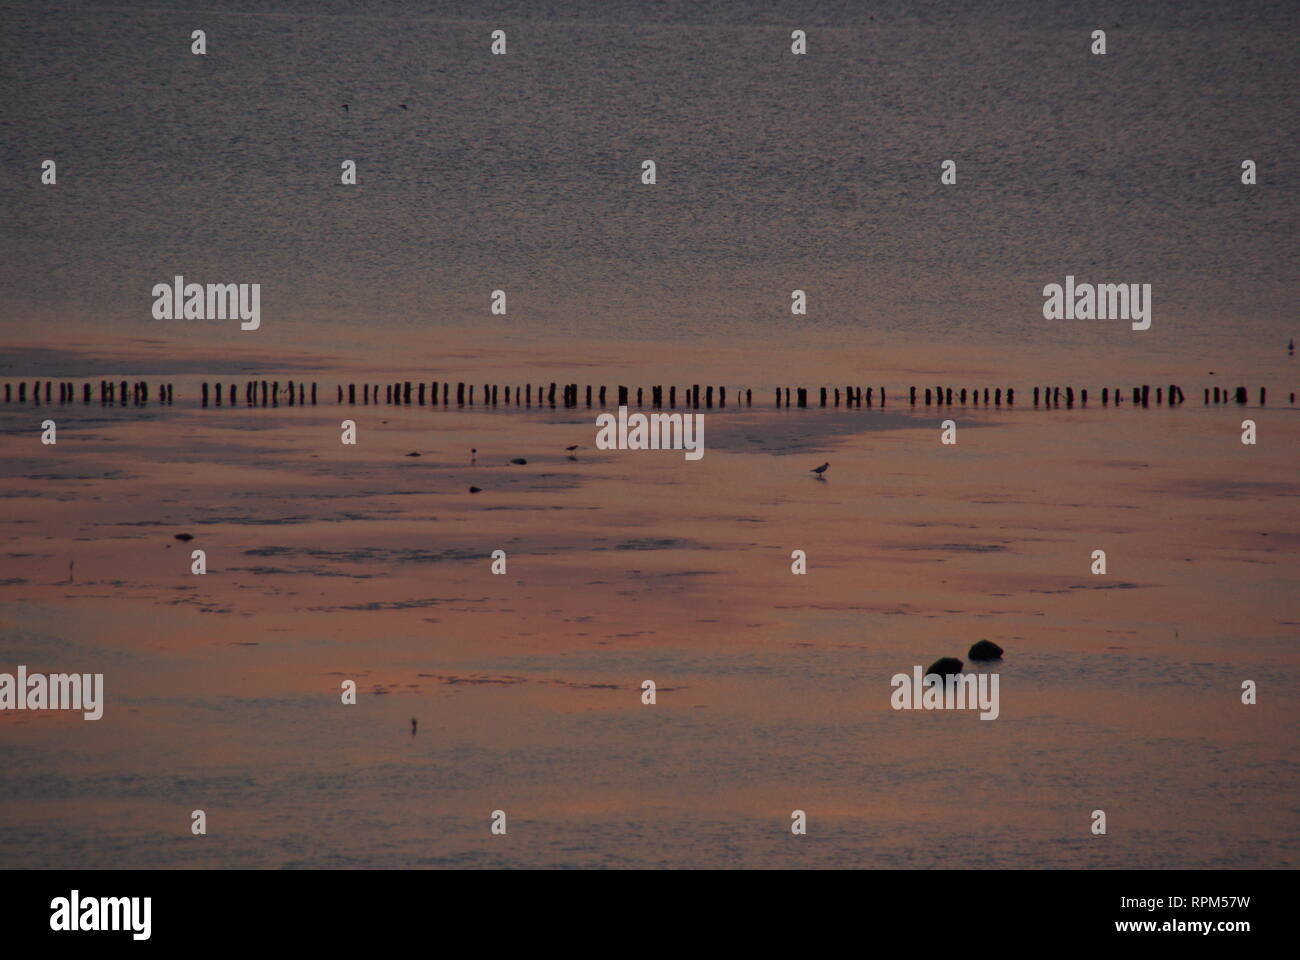 Tidal flat in an evening setting - Stock Image